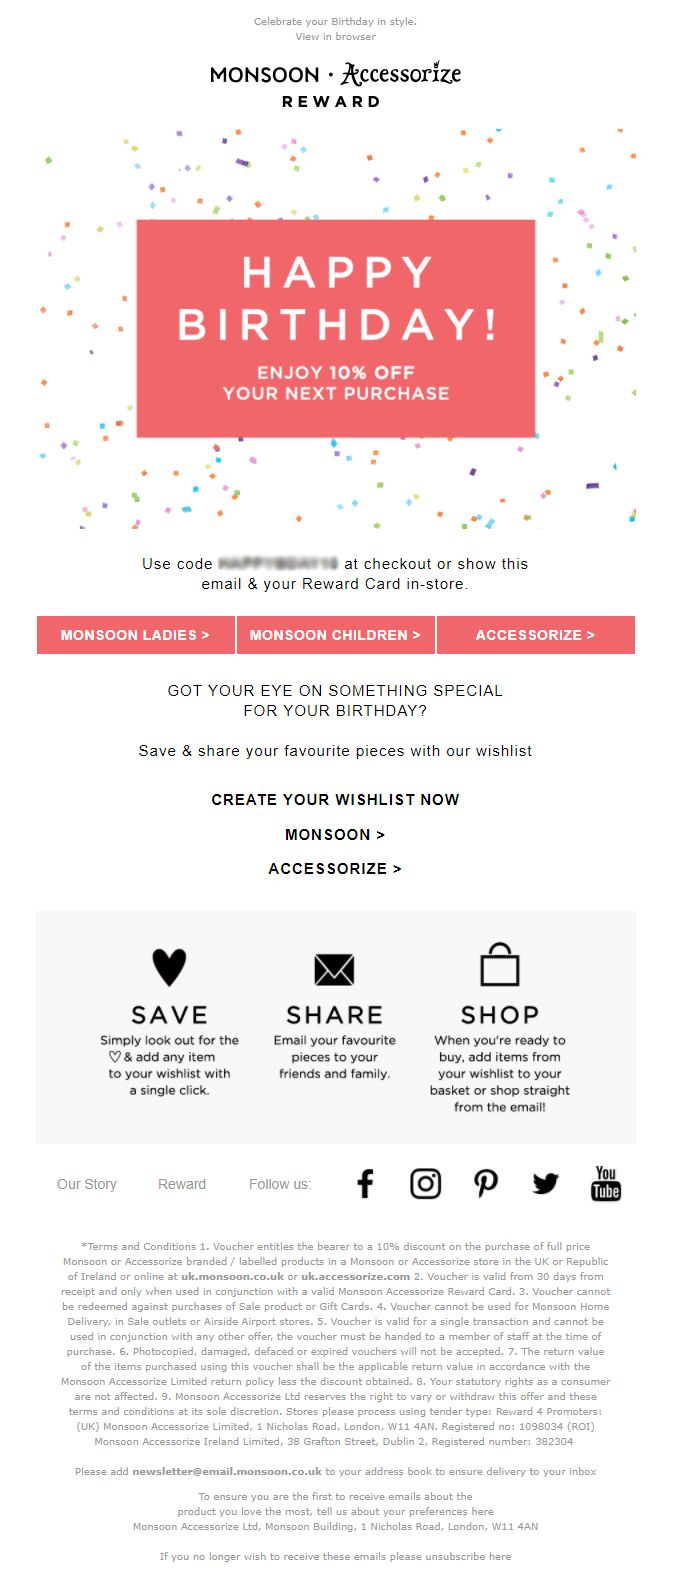 39 best birthday emails images on pinterest birthday email birthday email from monsoon accessorize with discount coupon emailmarketing email marketing fashion